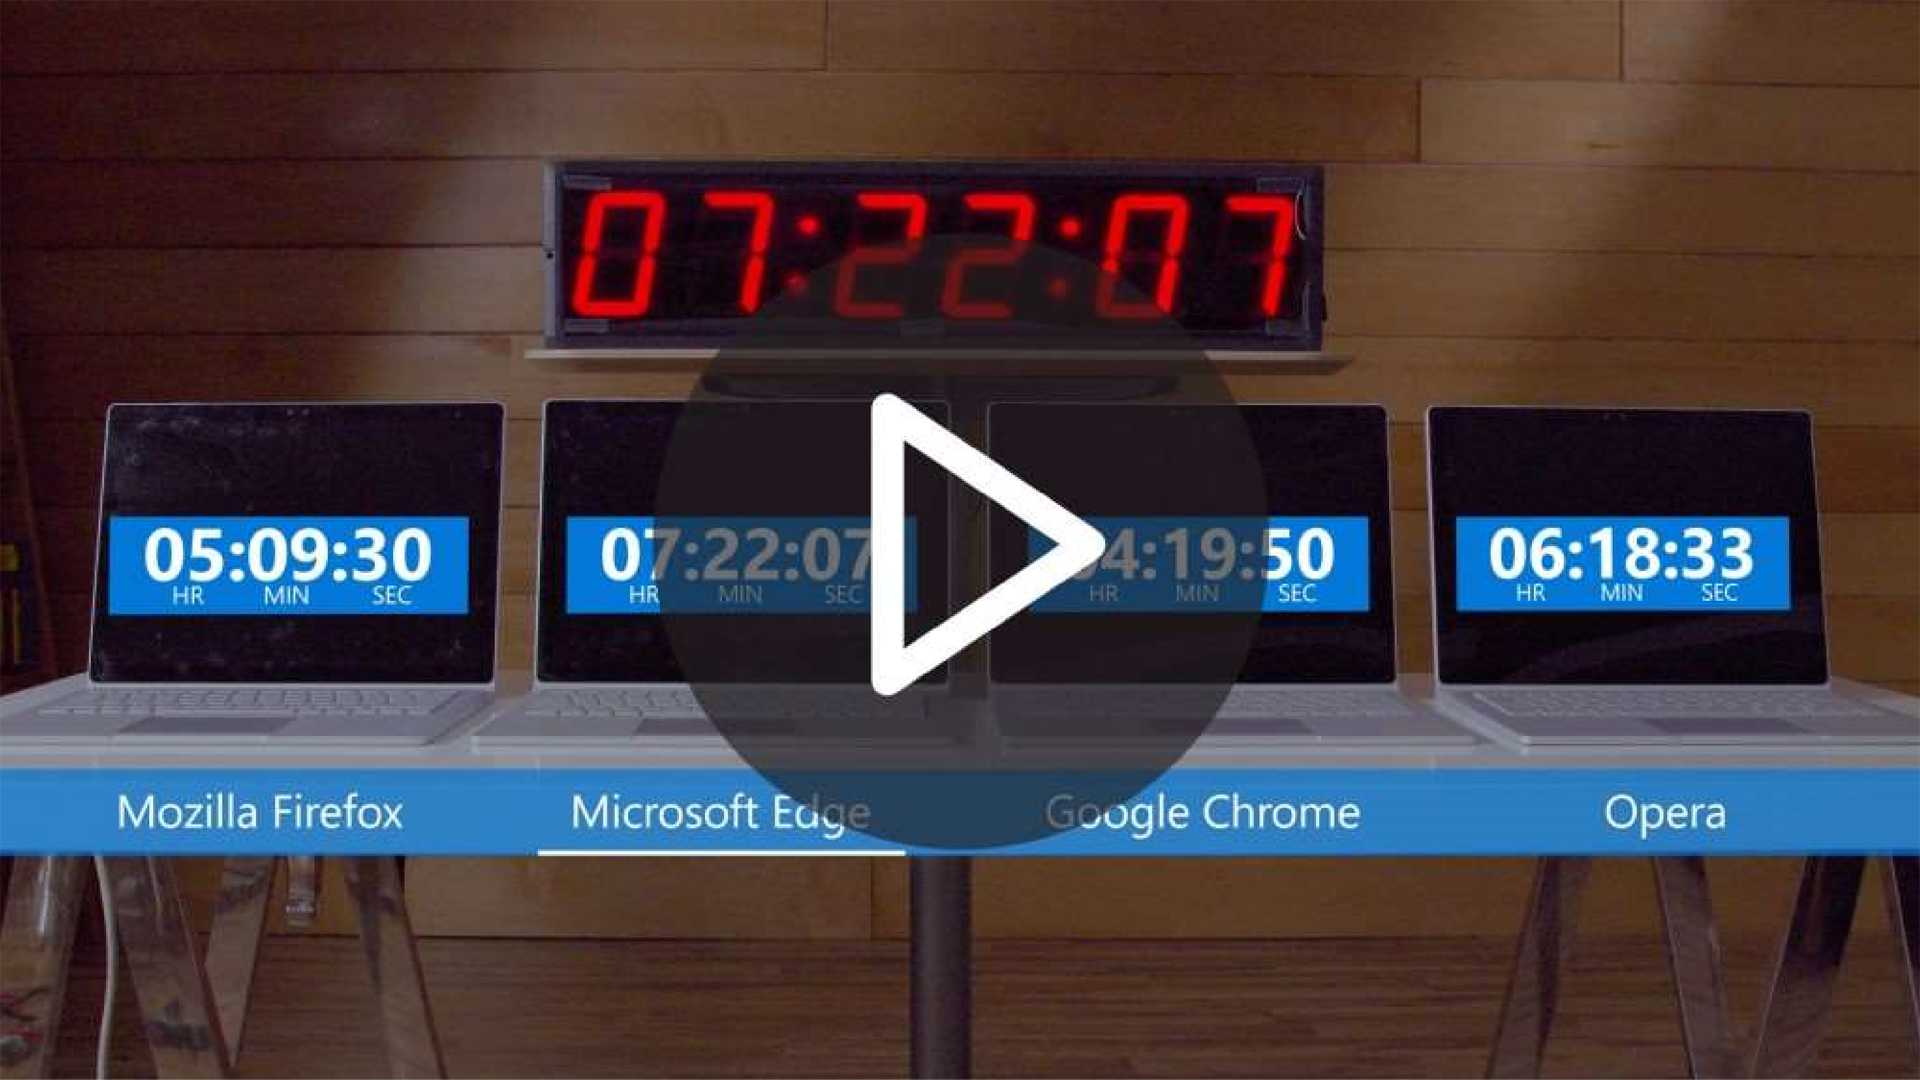 Battery tests on streaming video comparing Google Chrome, Mozilla Firefox, and Opera.